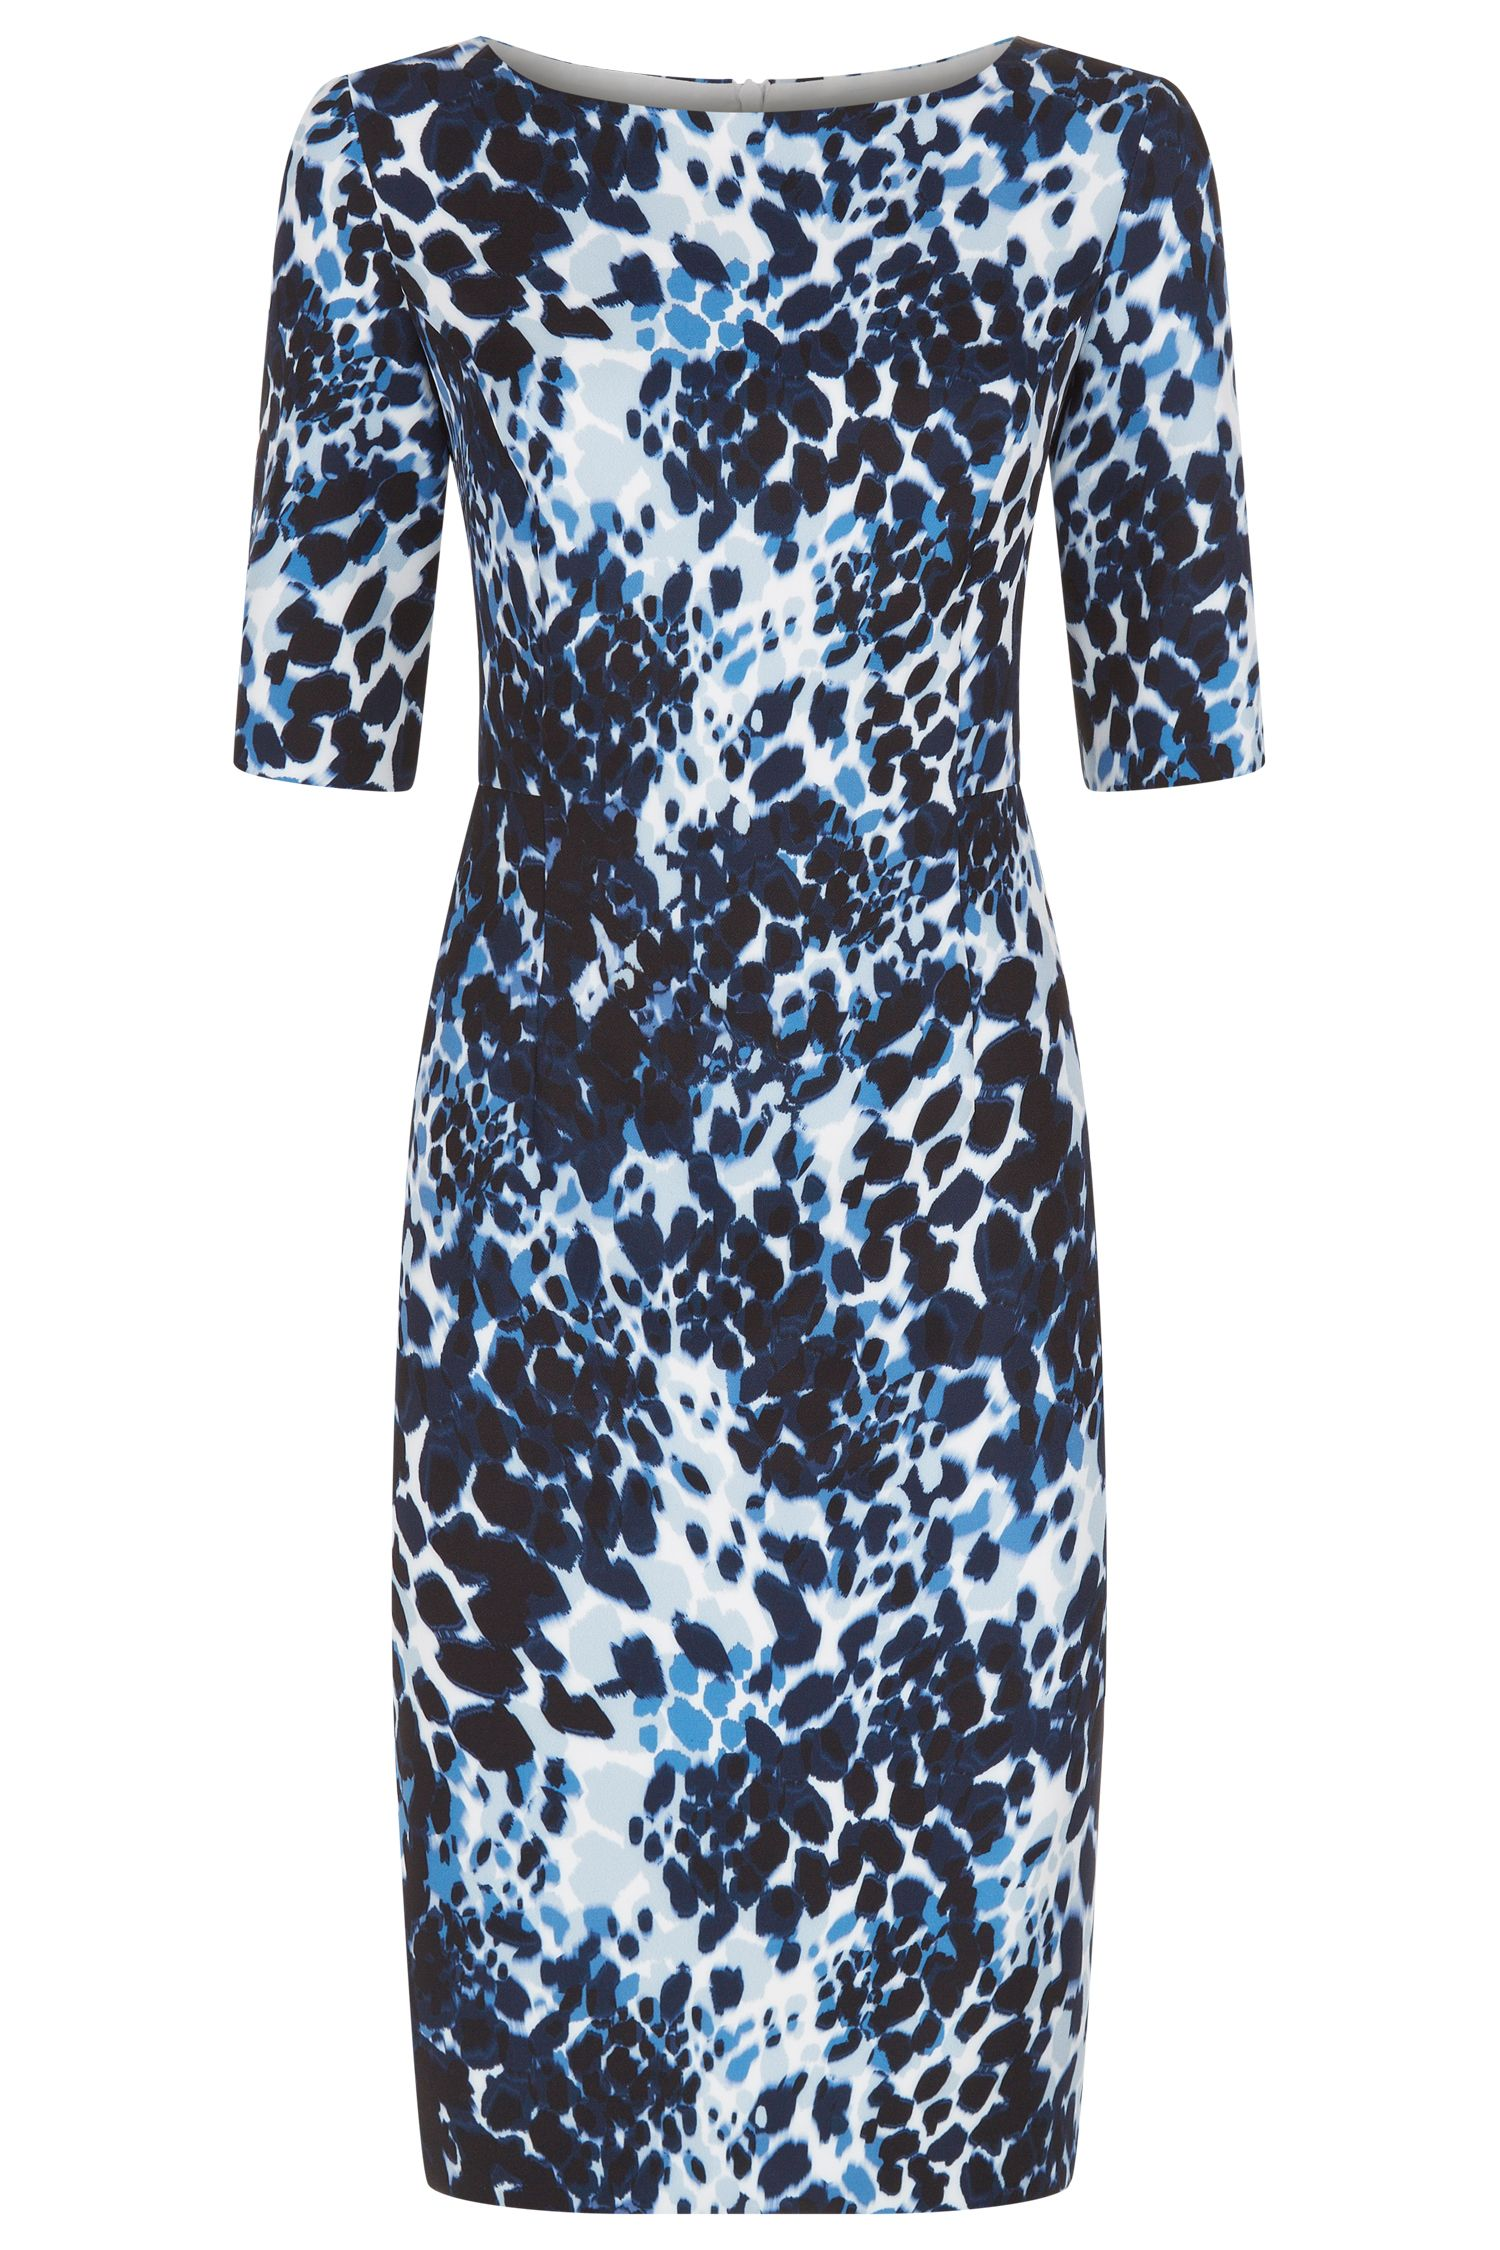 Fenn Wright Manson Athena Dress, Blue Multi